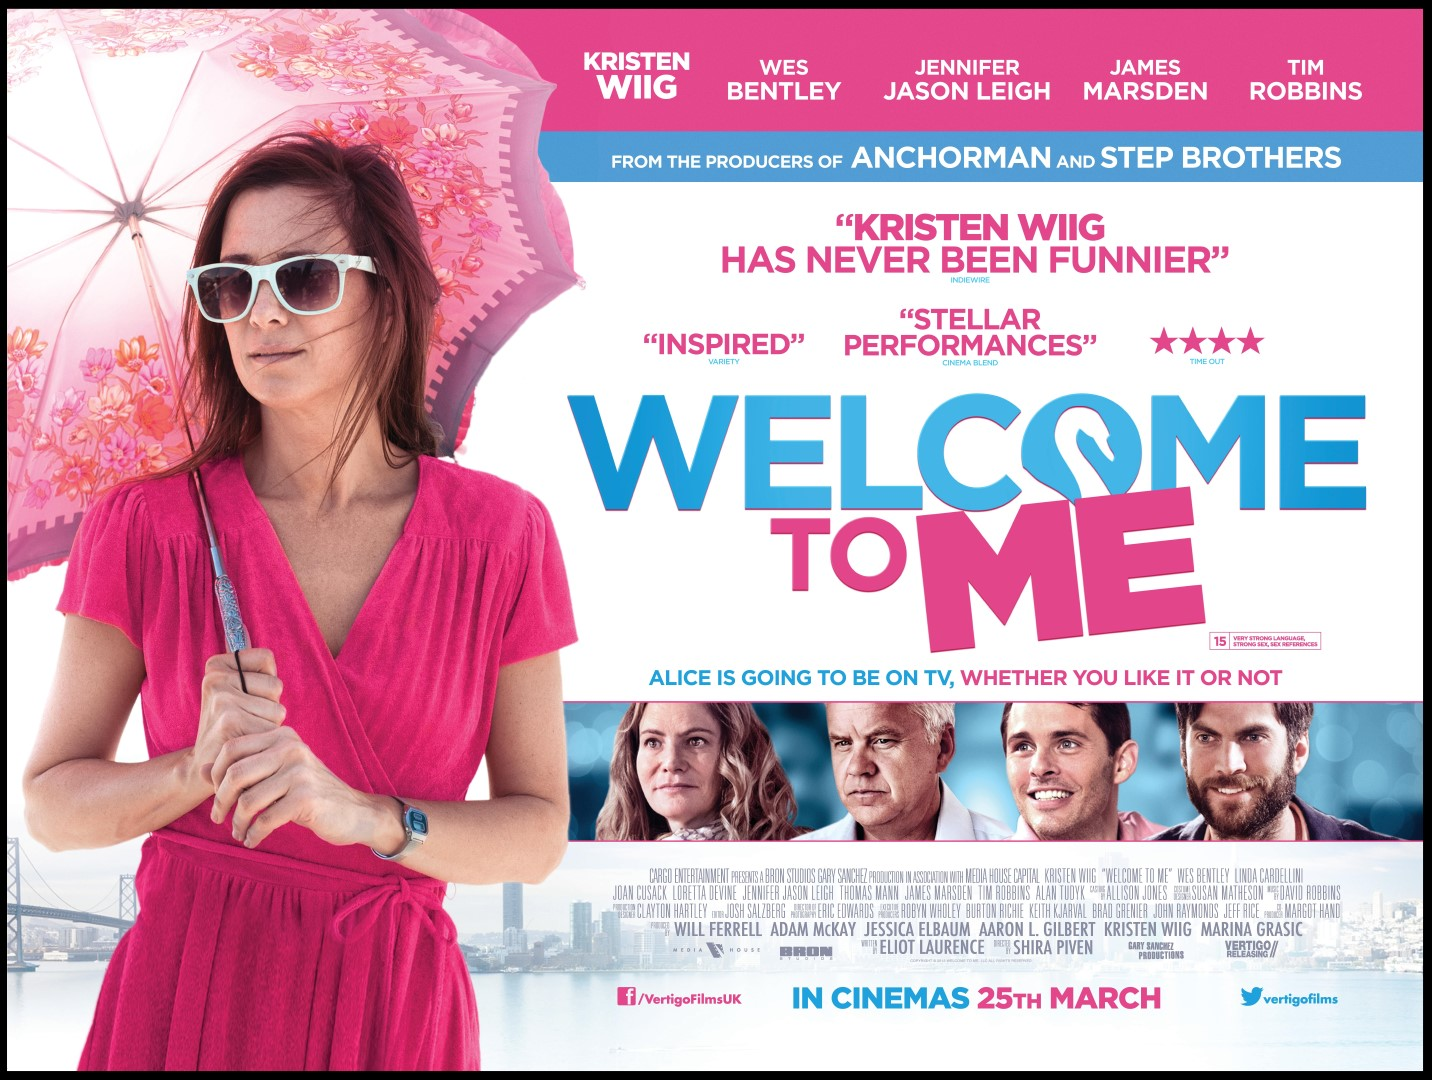 Welcome To Me Starring Kristen Wiig – Movie Review